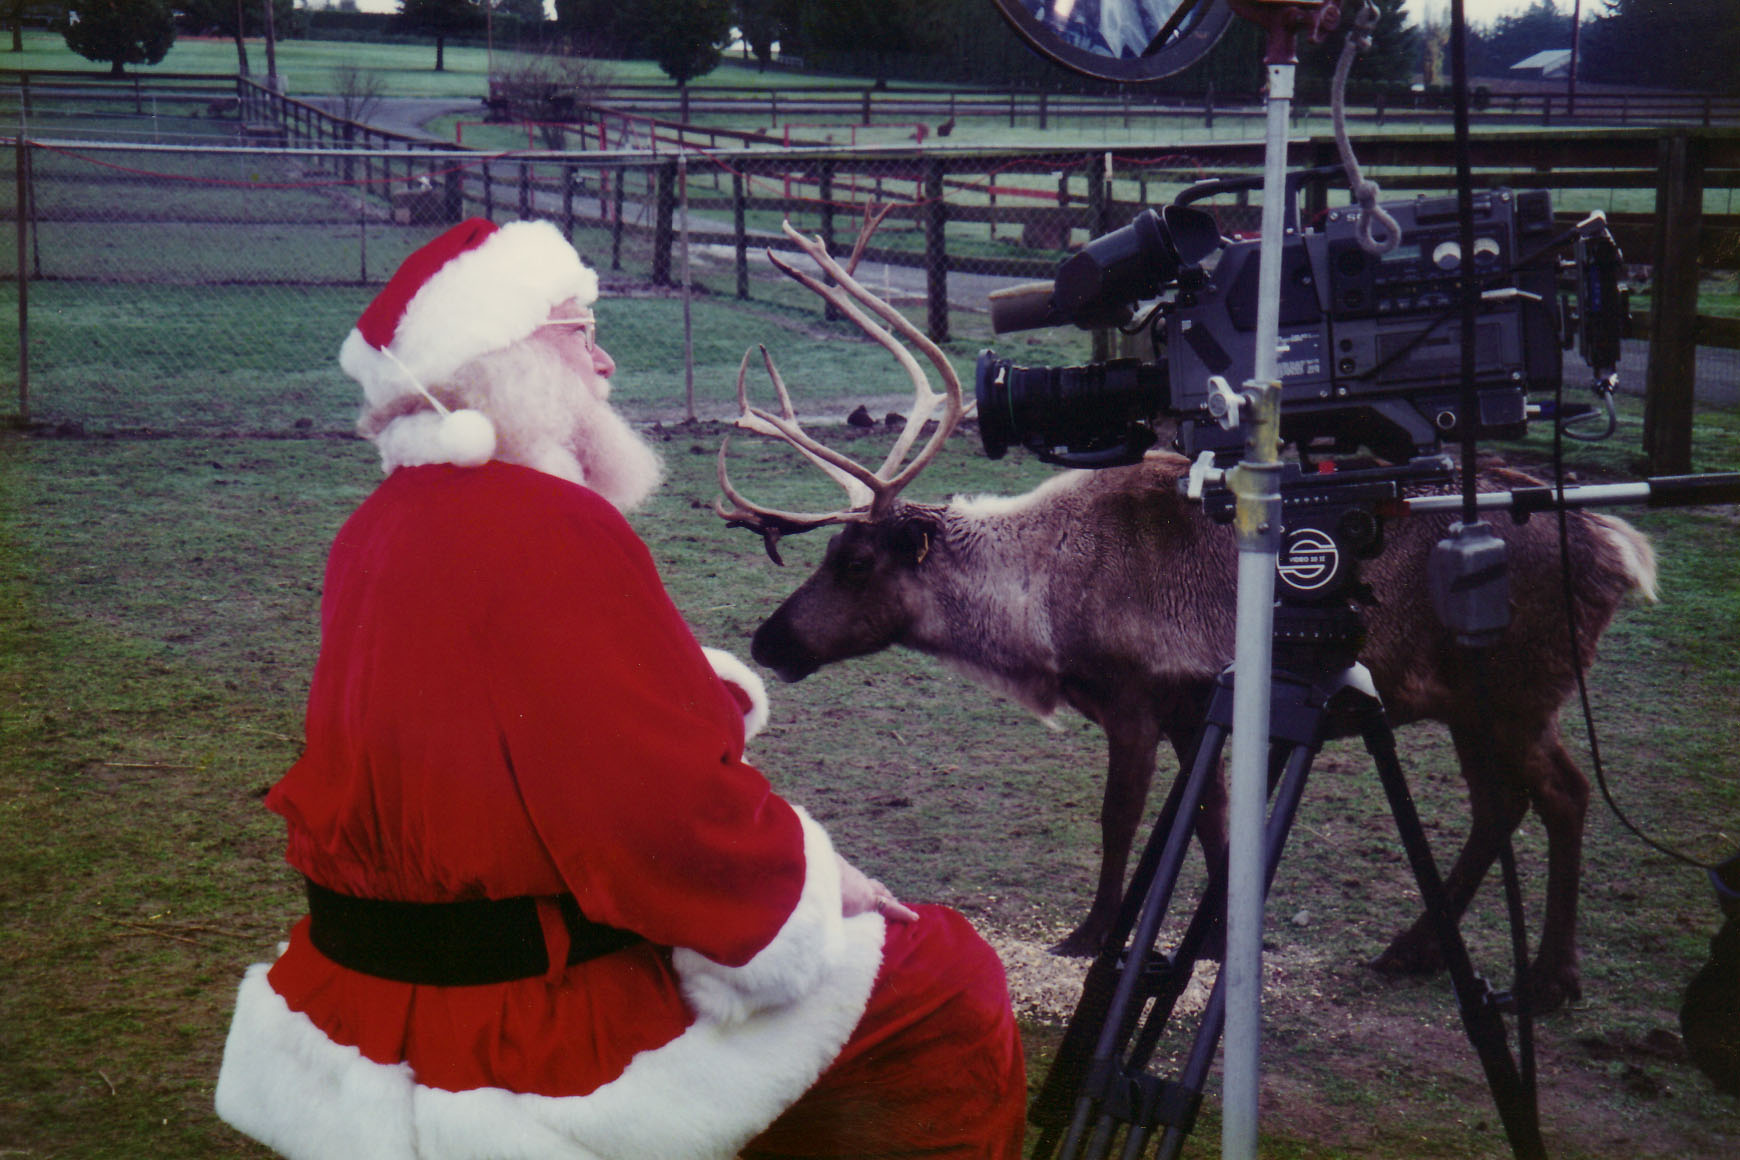 Promo shoot with Santa and one of his reindeer